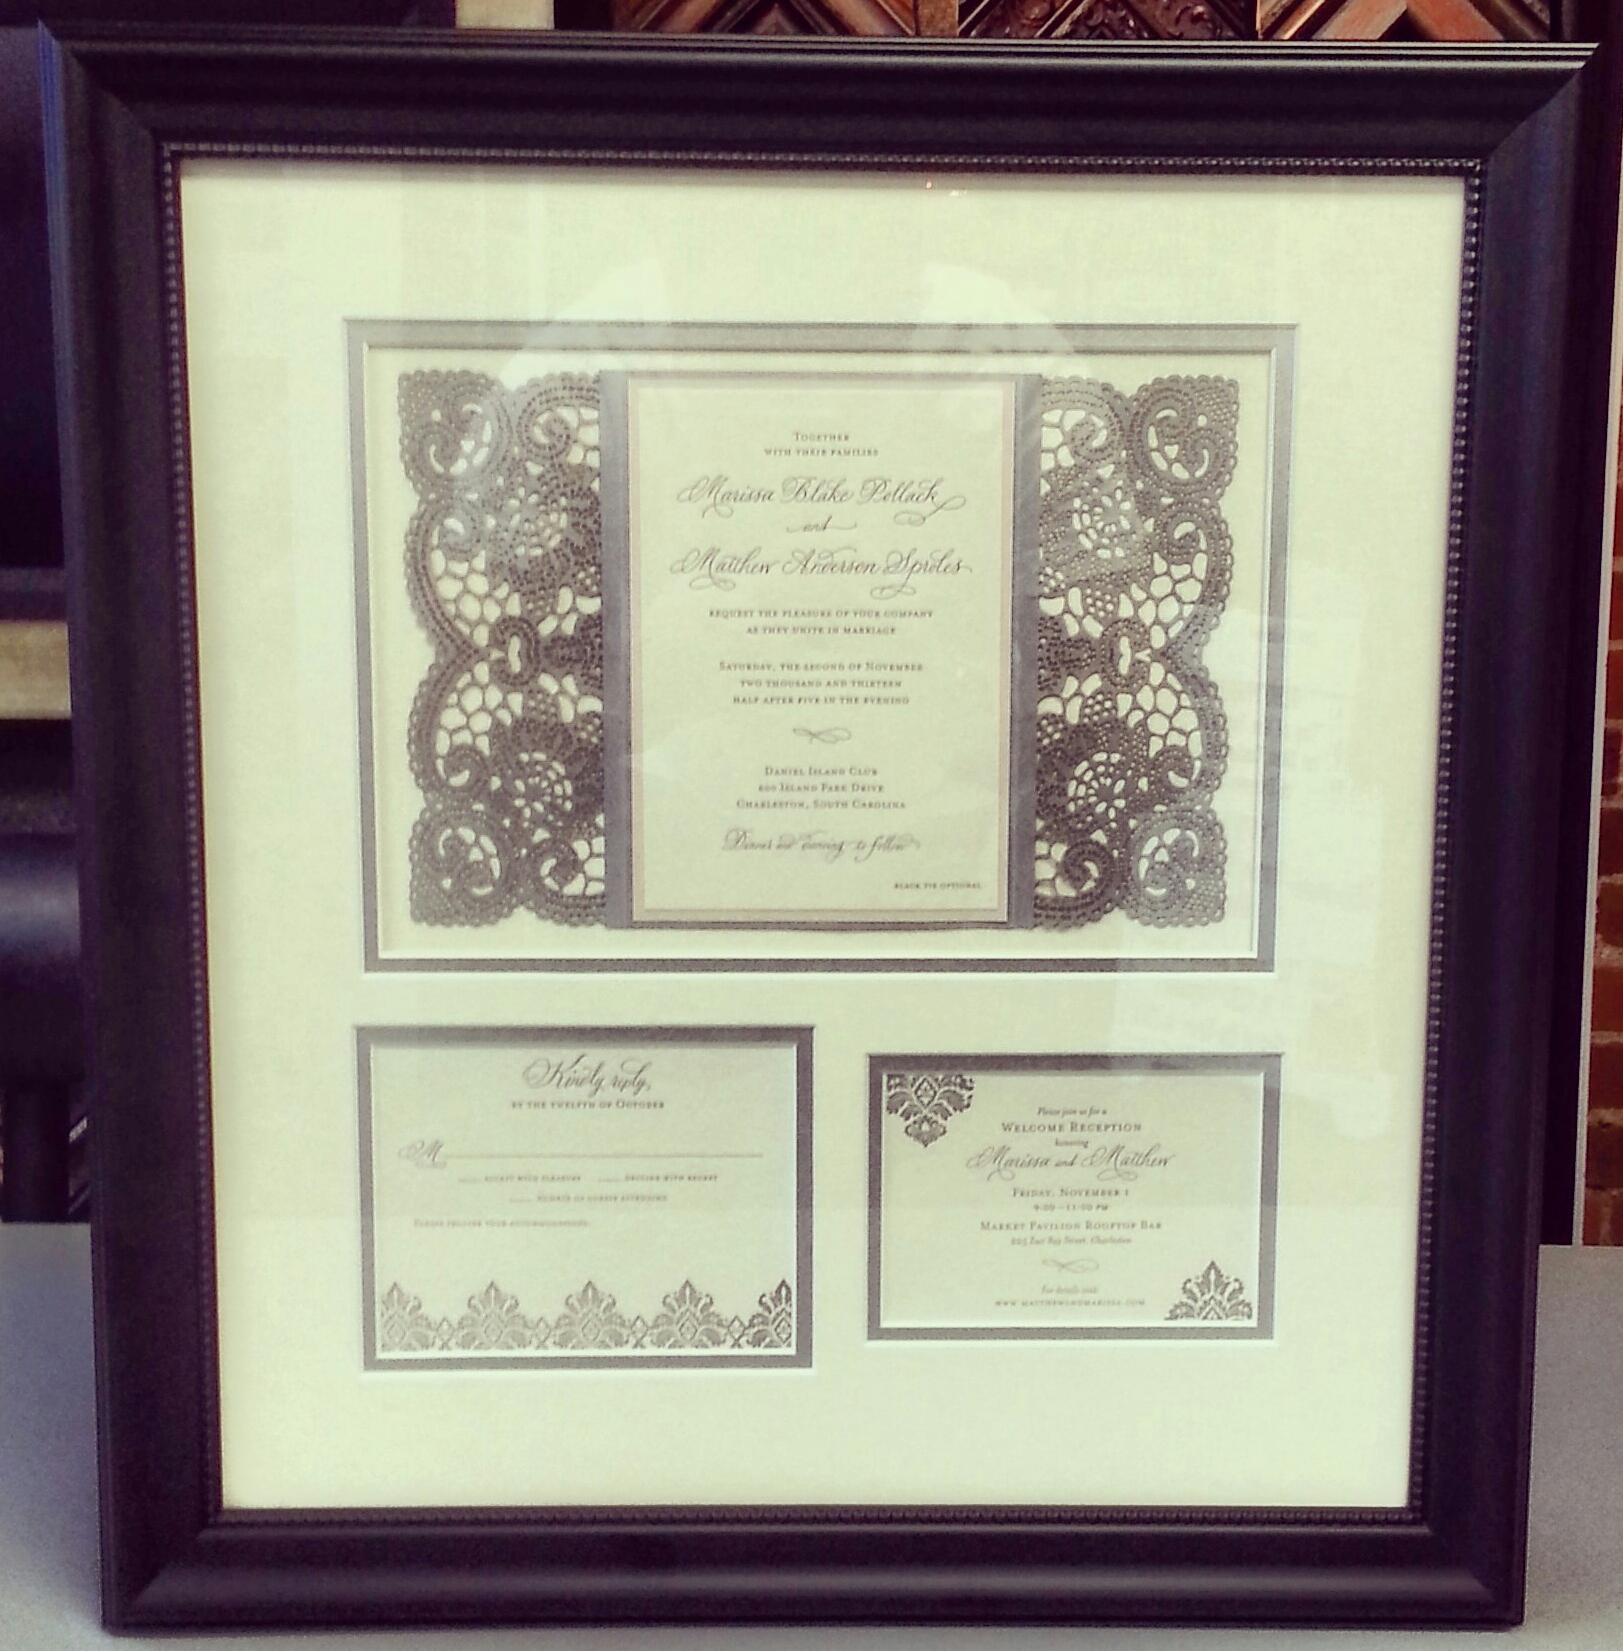 Wedding Invitations Gifts: Custom Framed Gifts Denver